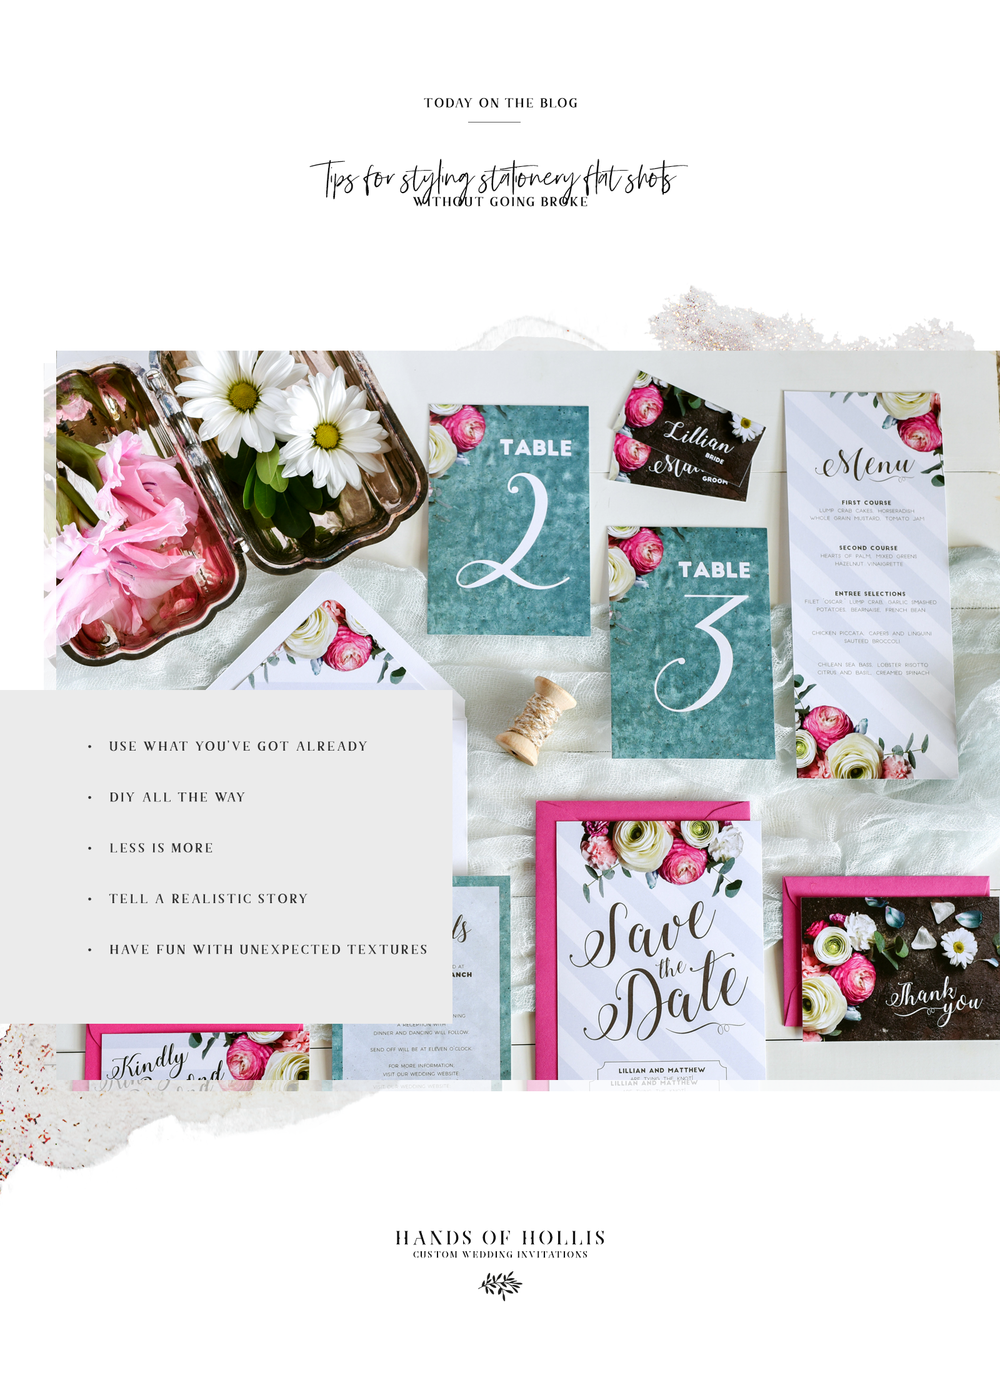 Hands of Hollis | Fine Art Stationery | Tips for Styling Stationery Flat Shots